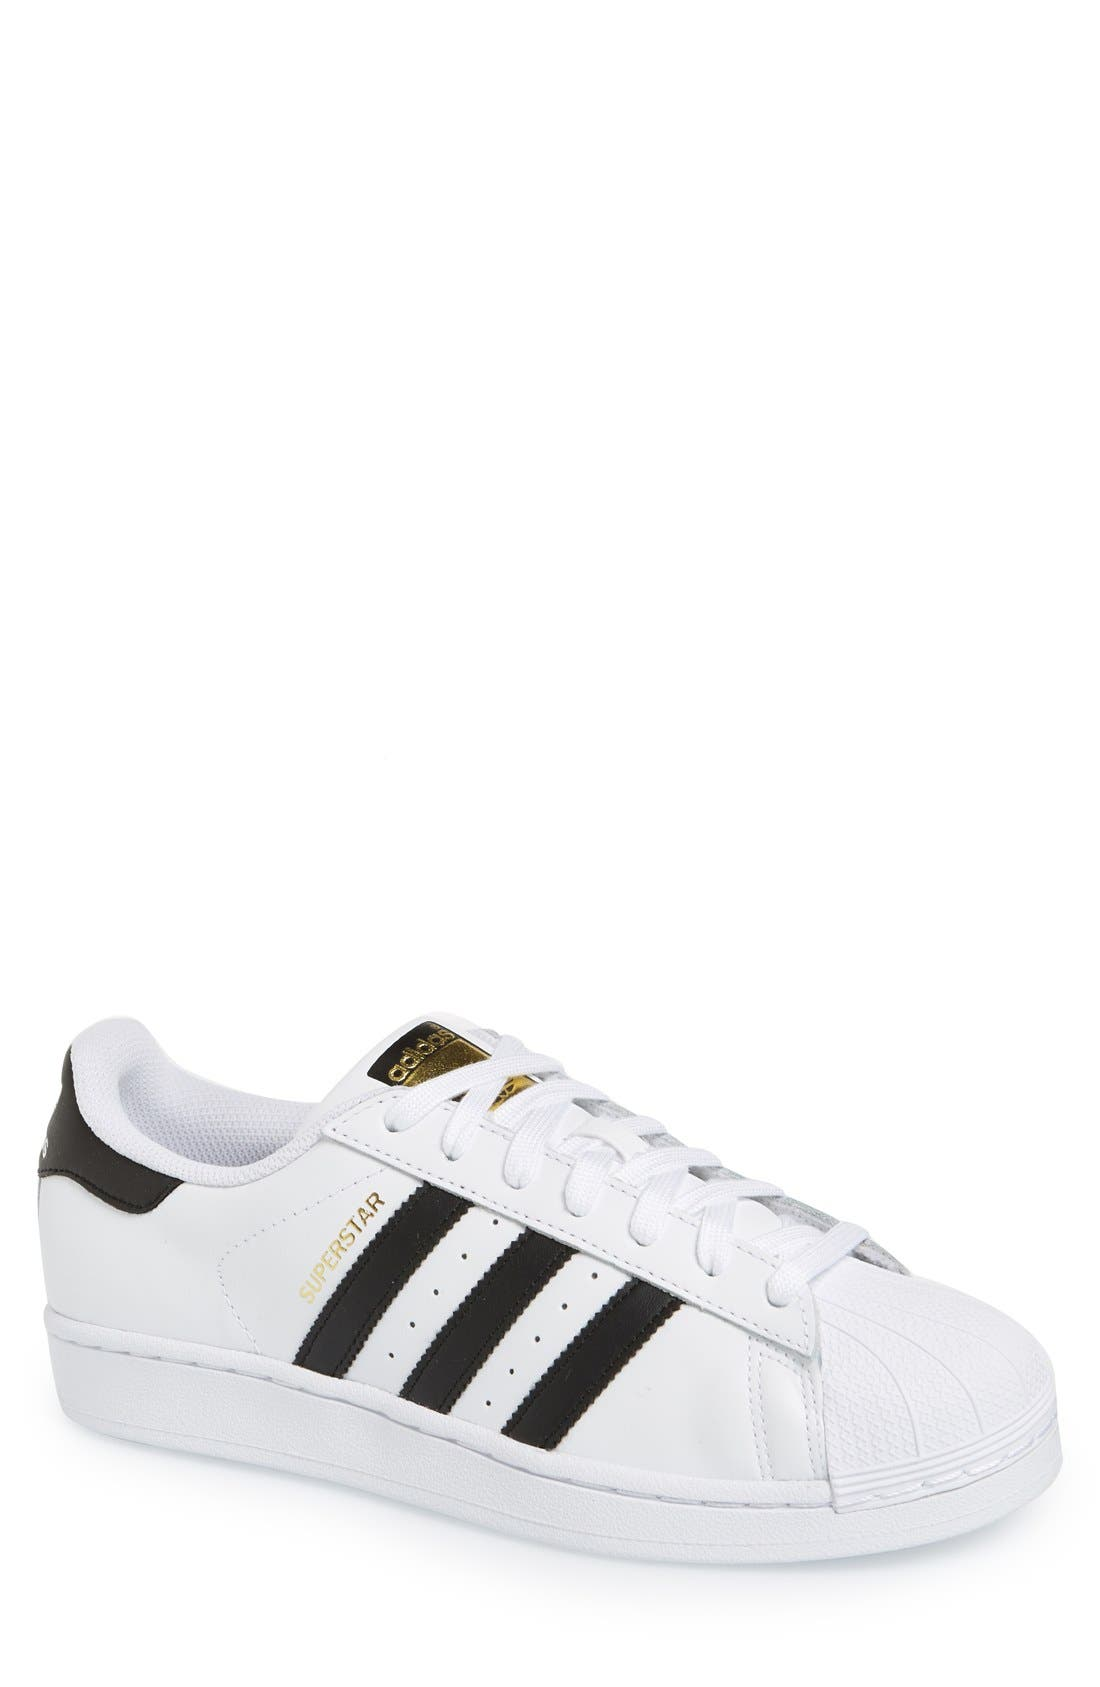 adidas Superstar Foundation Sneaker